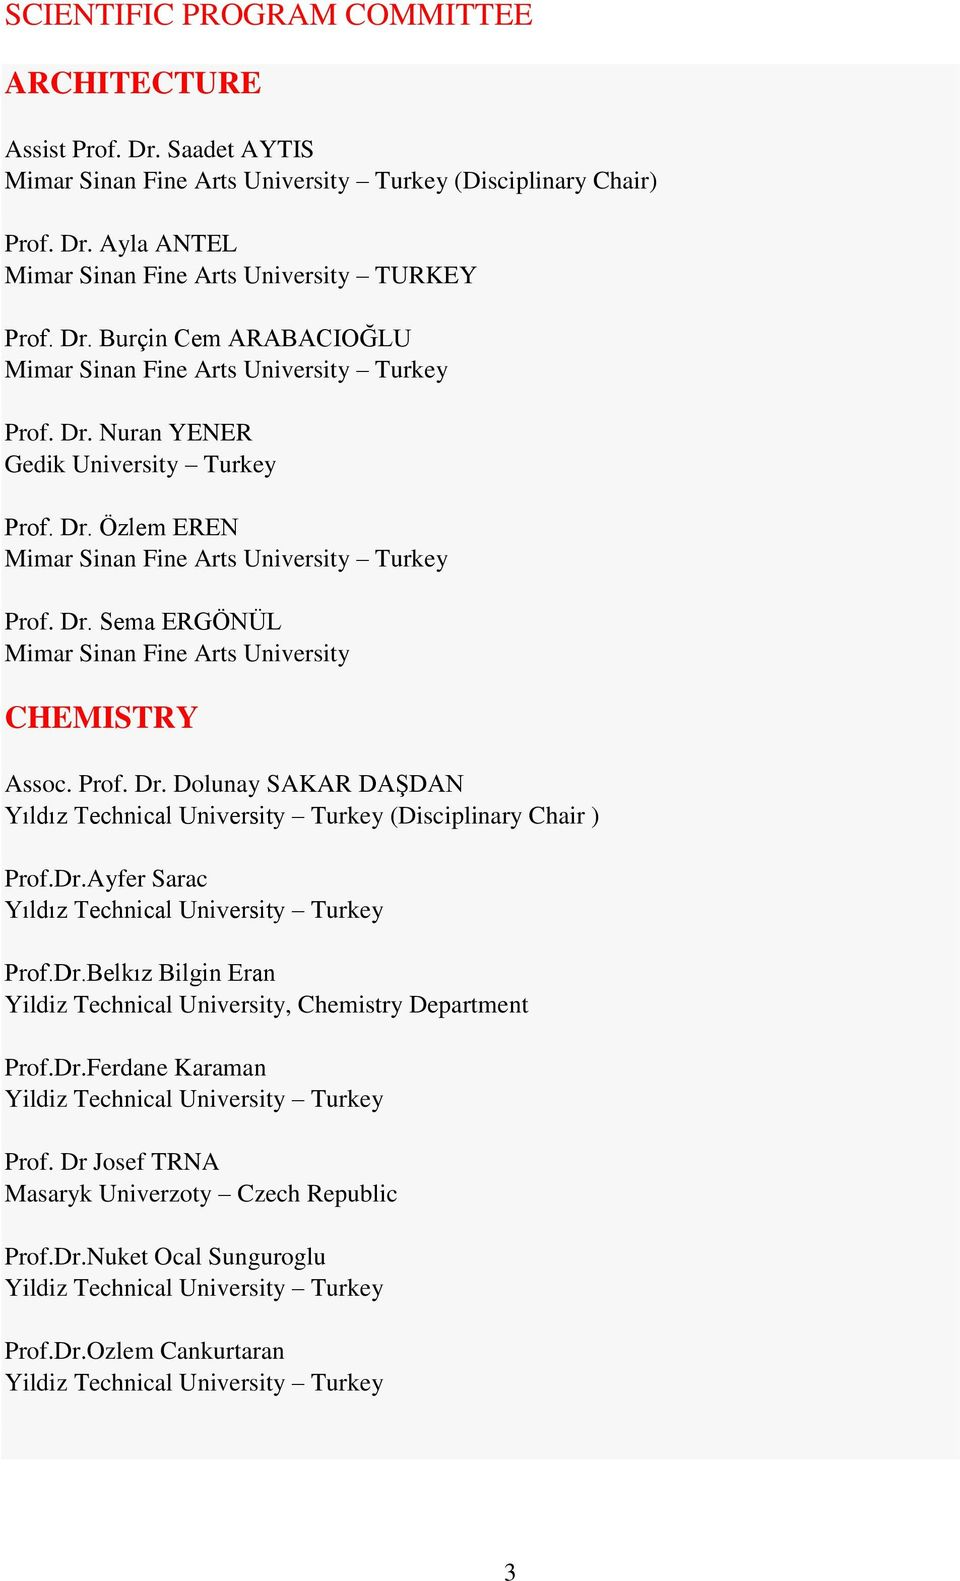 Prof. Dr. Dolunay SAKAR DAŞDAN Yıldız Technical University Turkey (Disciplinary Chair ) Prof.Dr.Ayfer Sarac Yıldız Technical University Turkey Prof.Dr.Belkız Bilgin Eran Yildiz Technical University, Chemistry Department Prof.